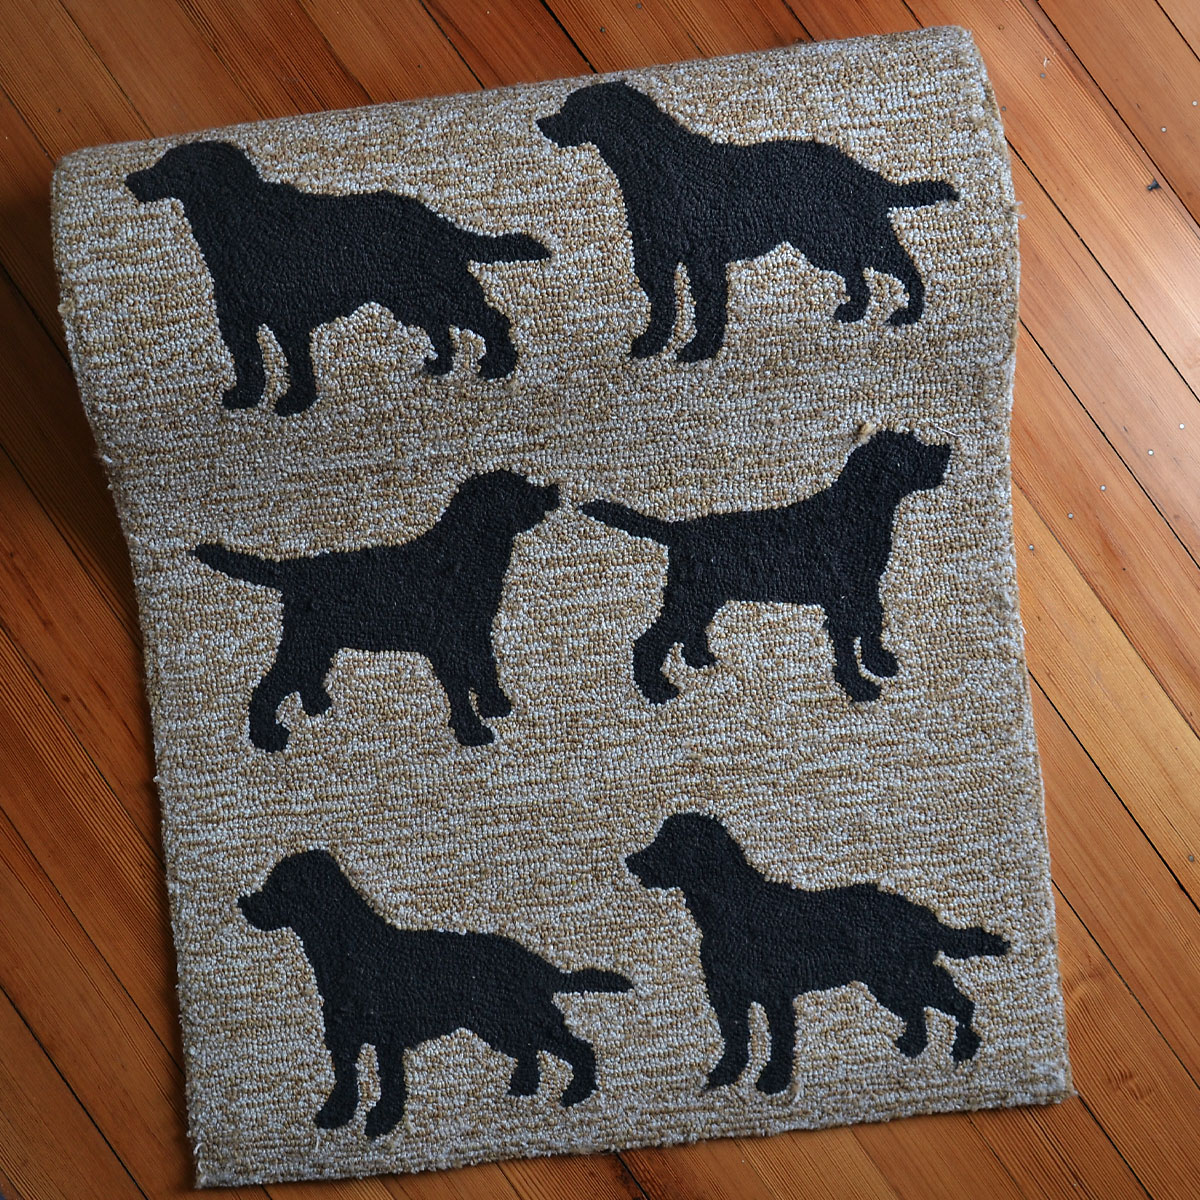 """Liora Manne Tufted Rug - The Kimball Shop & Boutique has generously contributed this hand tufted Liora Manne rug which measures 27"""" x72"""